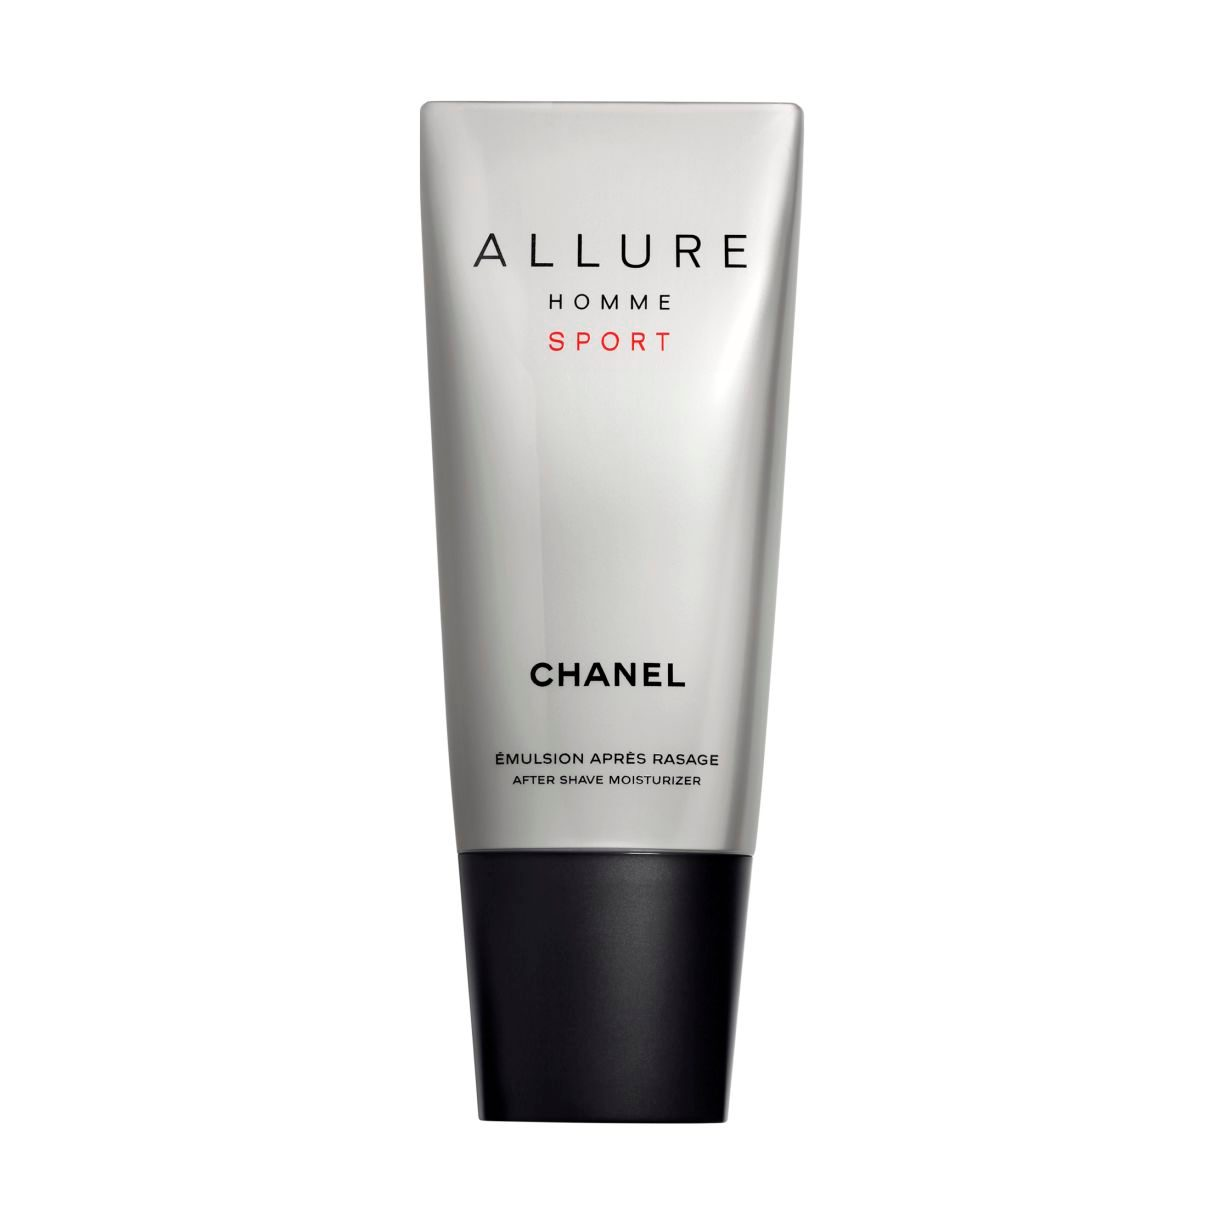 ALLURE HOMME SPORT AFTER SHAVE EMULSION